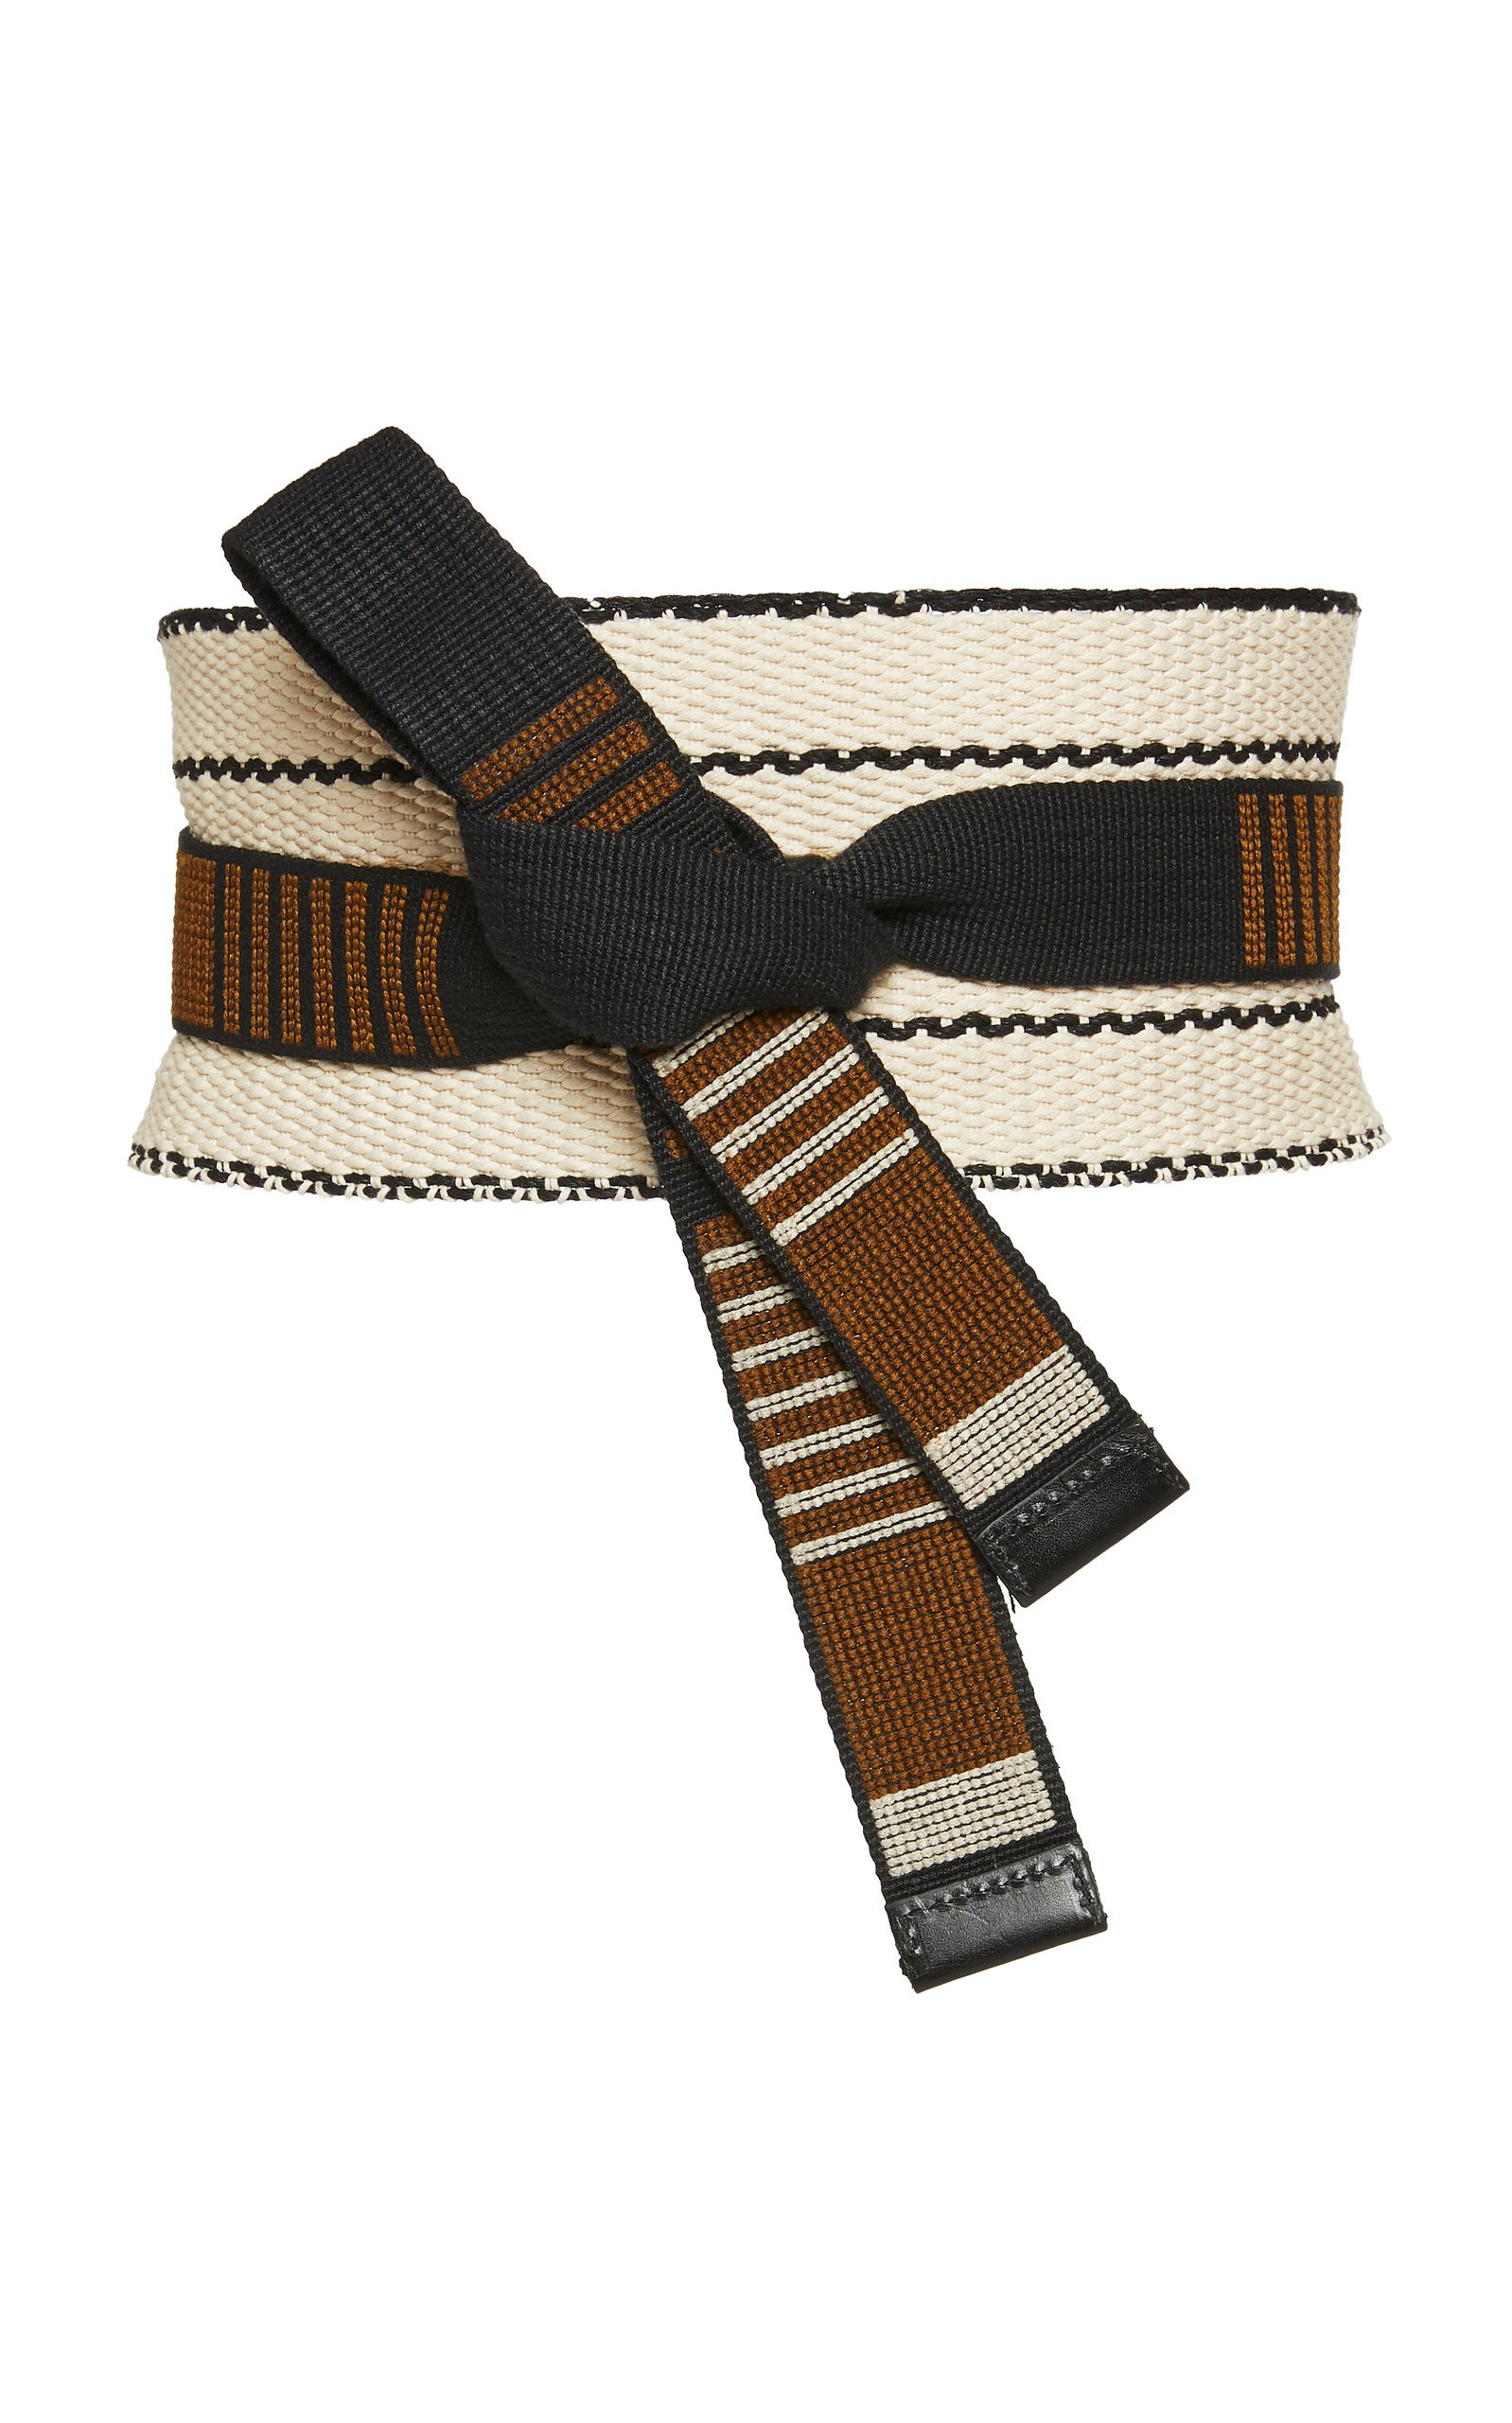 Etro Leather-Trimmed Knotted Cotton-Canvas Belt